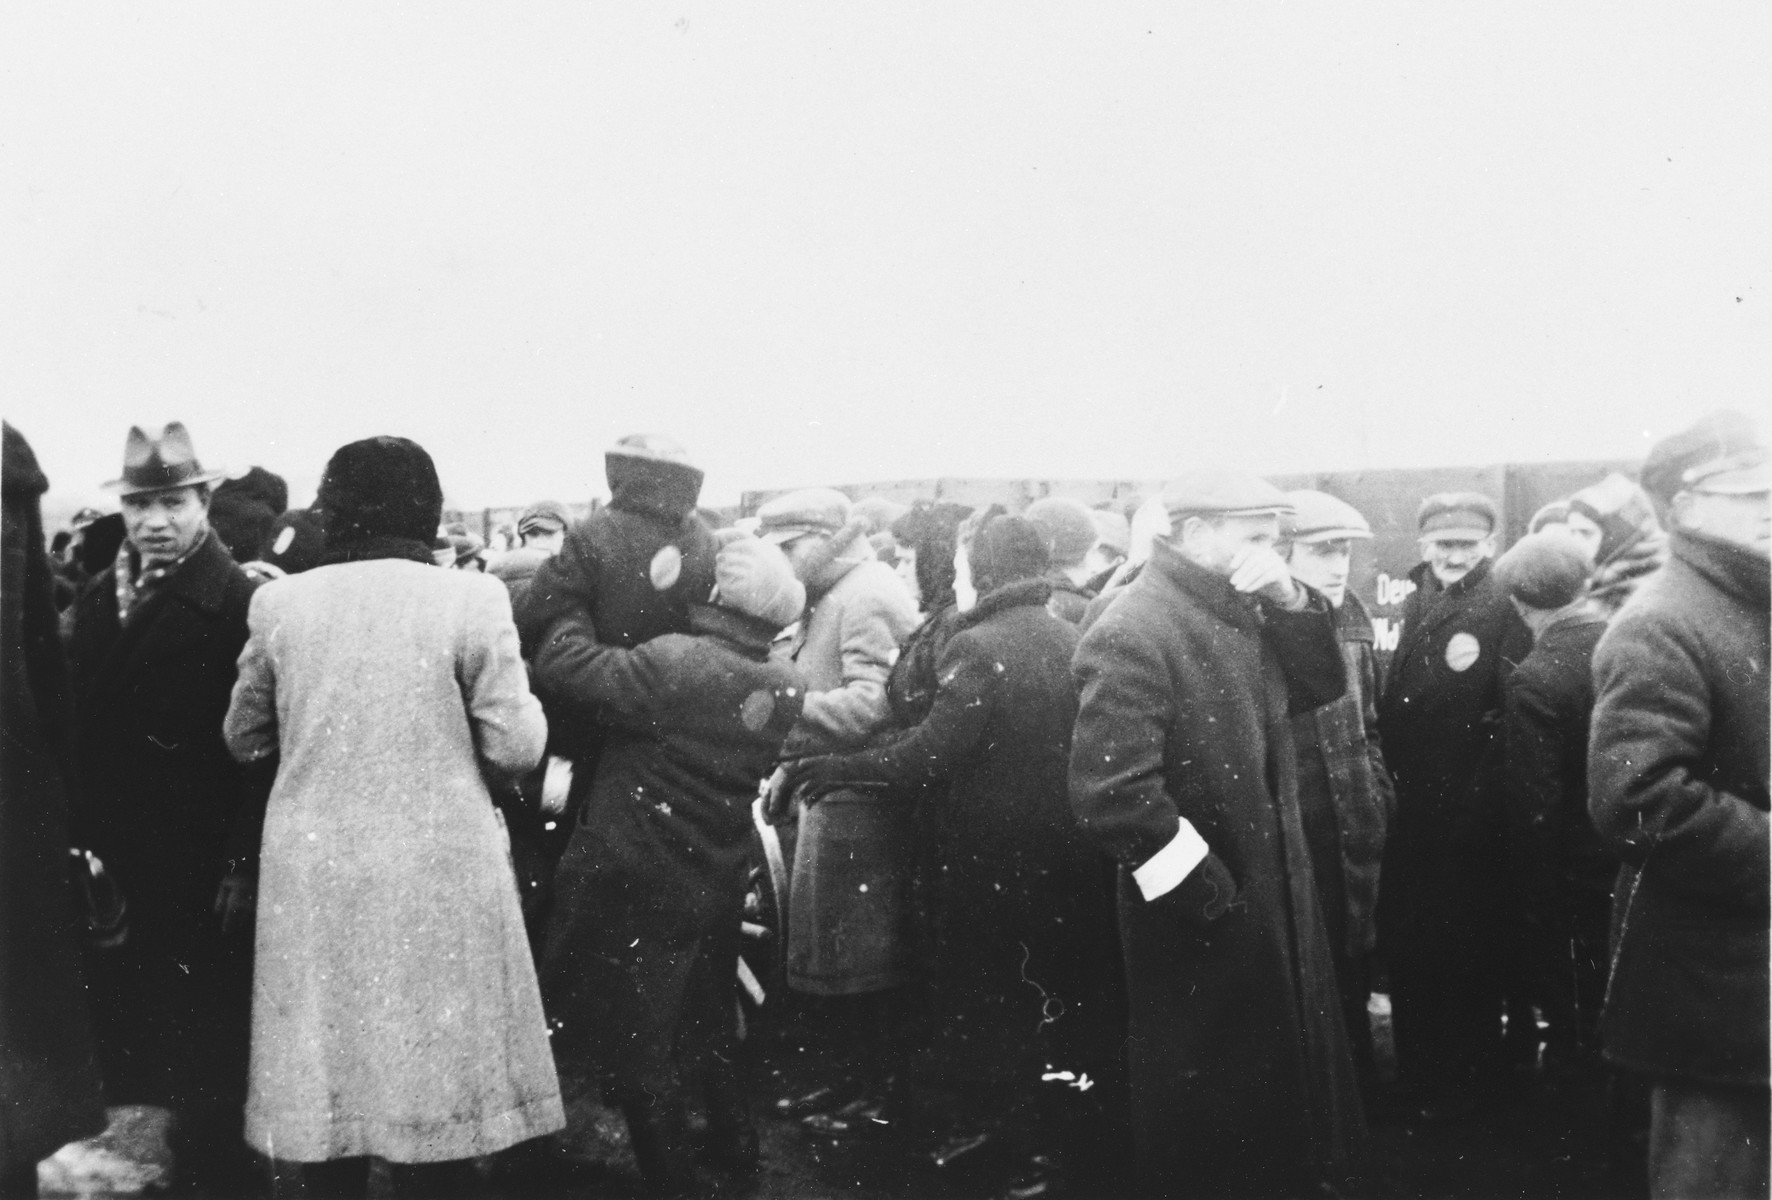 Jews who have been expelled from the town of Plock are resettled in Chmielnik.